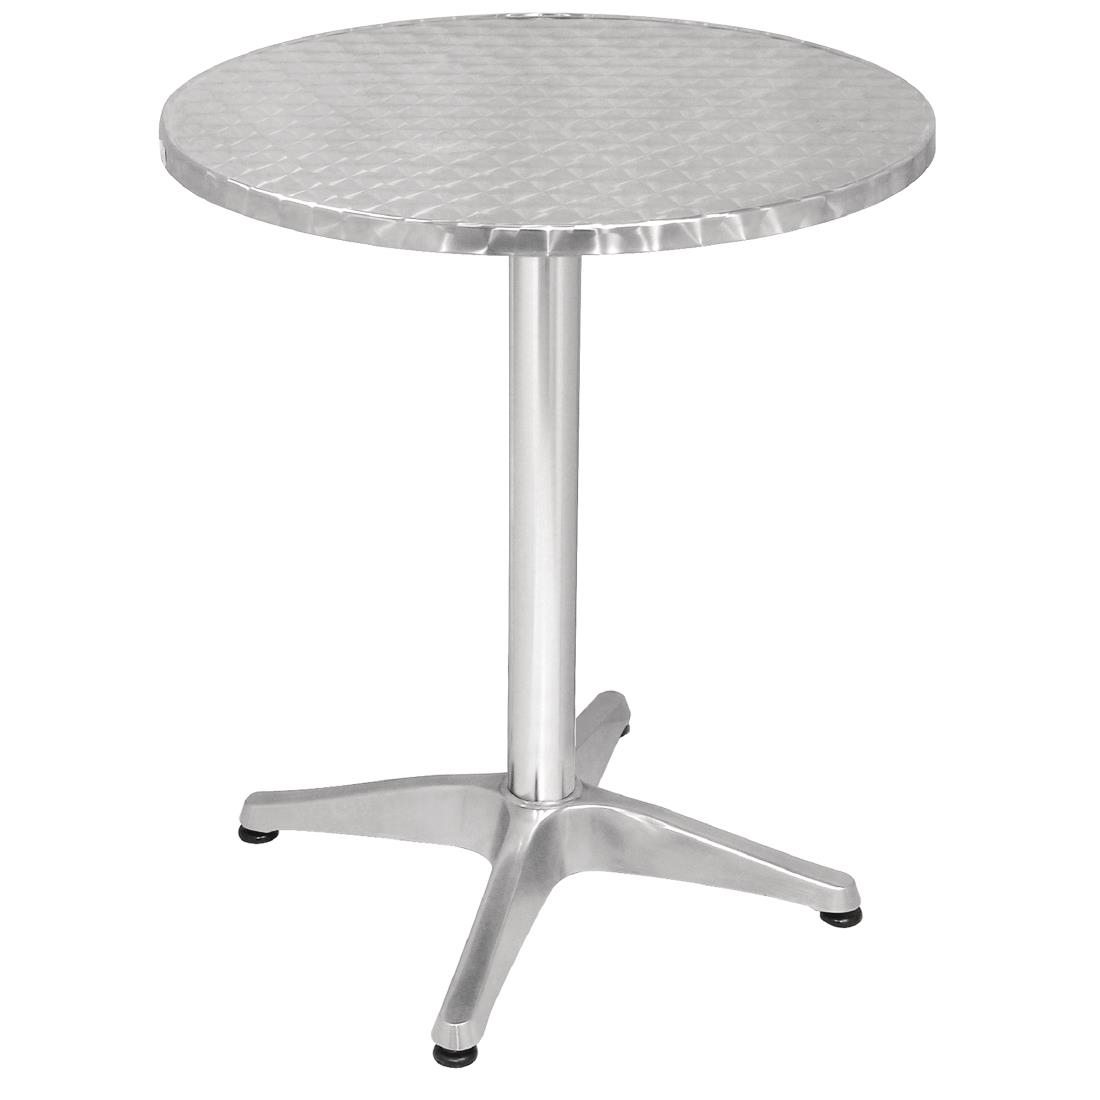 Bolero Round Bistro Table Stainless Steel 600mm U425 Buy